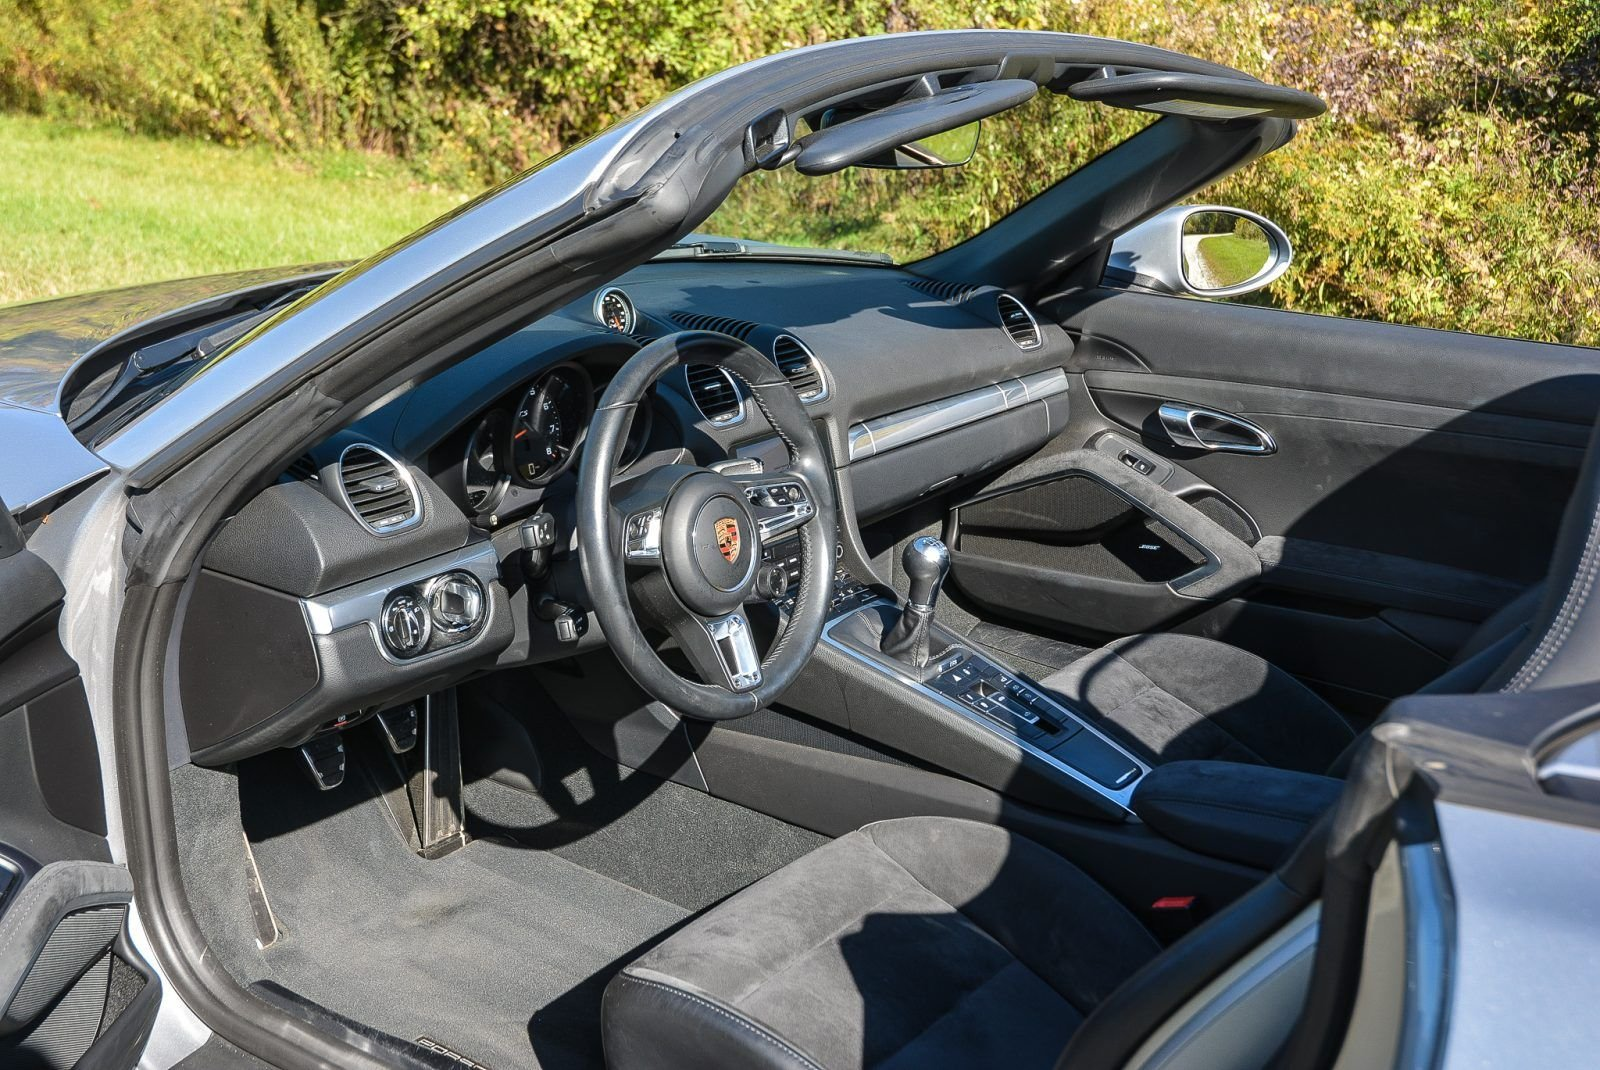 2019 Porsche 718 Boxster GTS - Manual 9.9k miles Silver $ For Sale (picture 4 of 6)